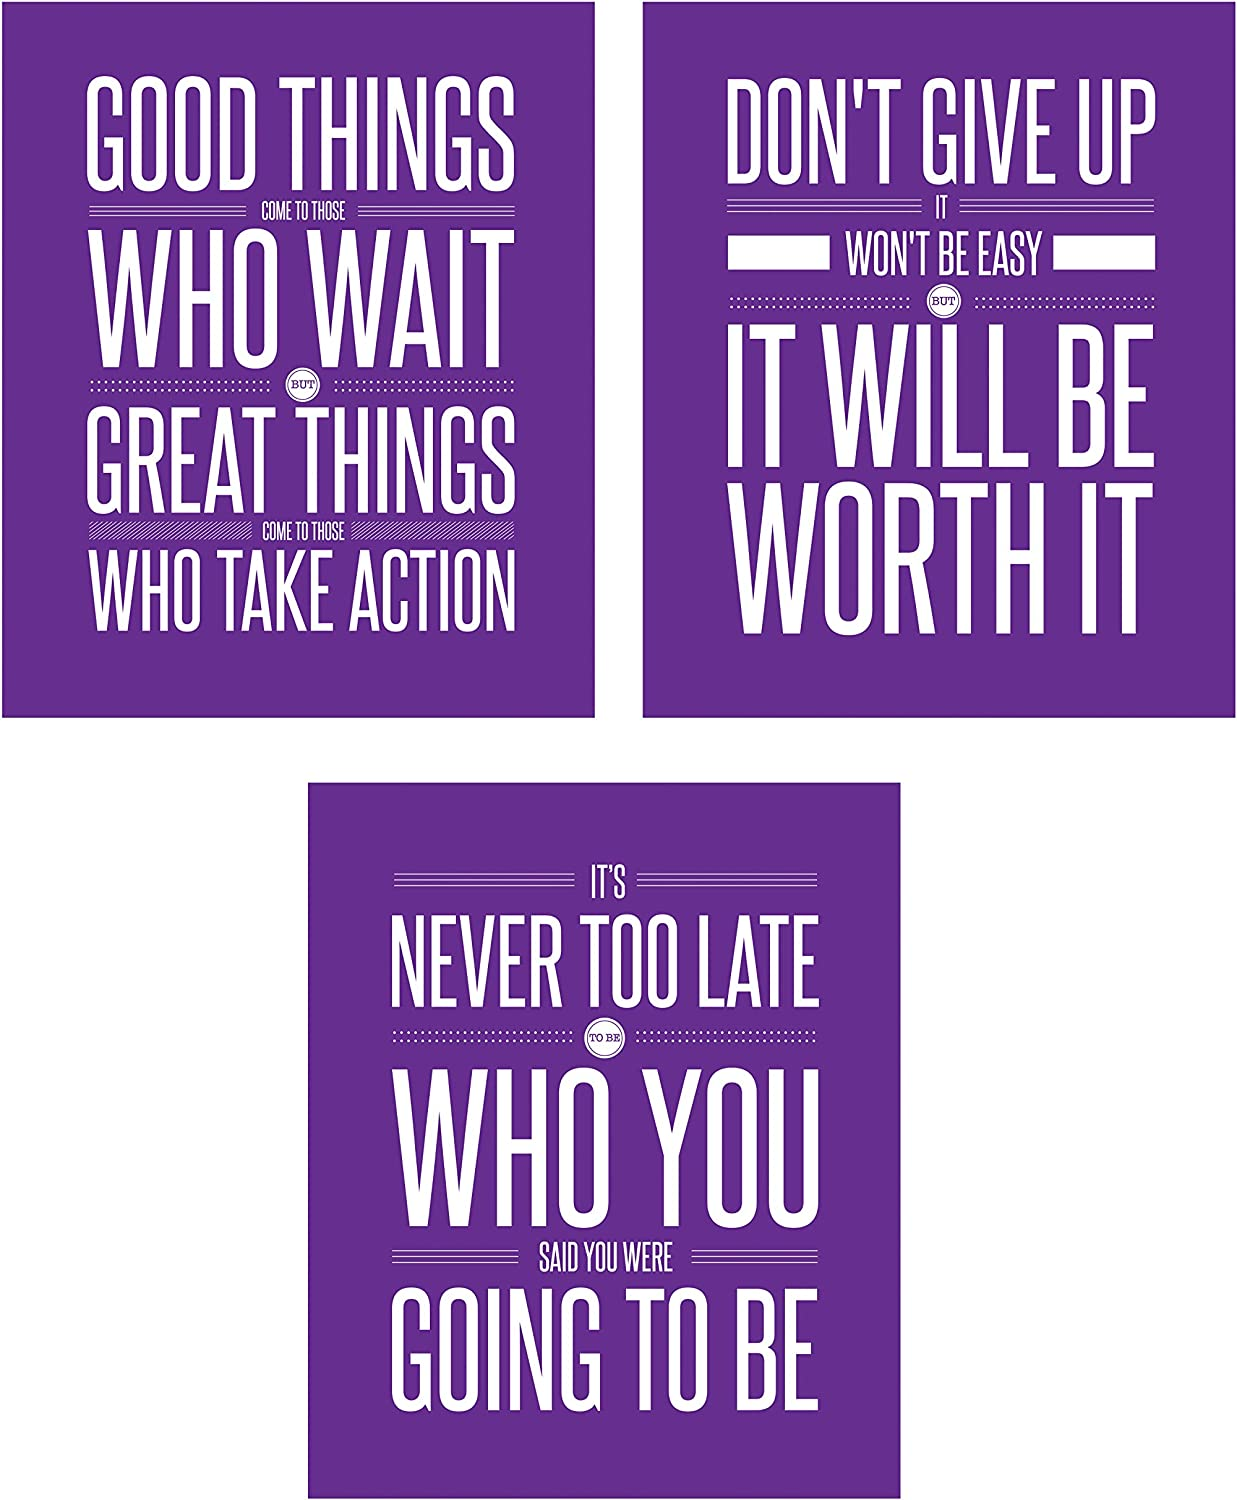 Don't Give Up 3 Poster Set Motivational Inspirational Quote Wall Workout Sports Art Boy Girl Teen Fitness Wall Home Decor Office Classroom Dorm Room Gym Entrepreneur (8 x 10 Purple)